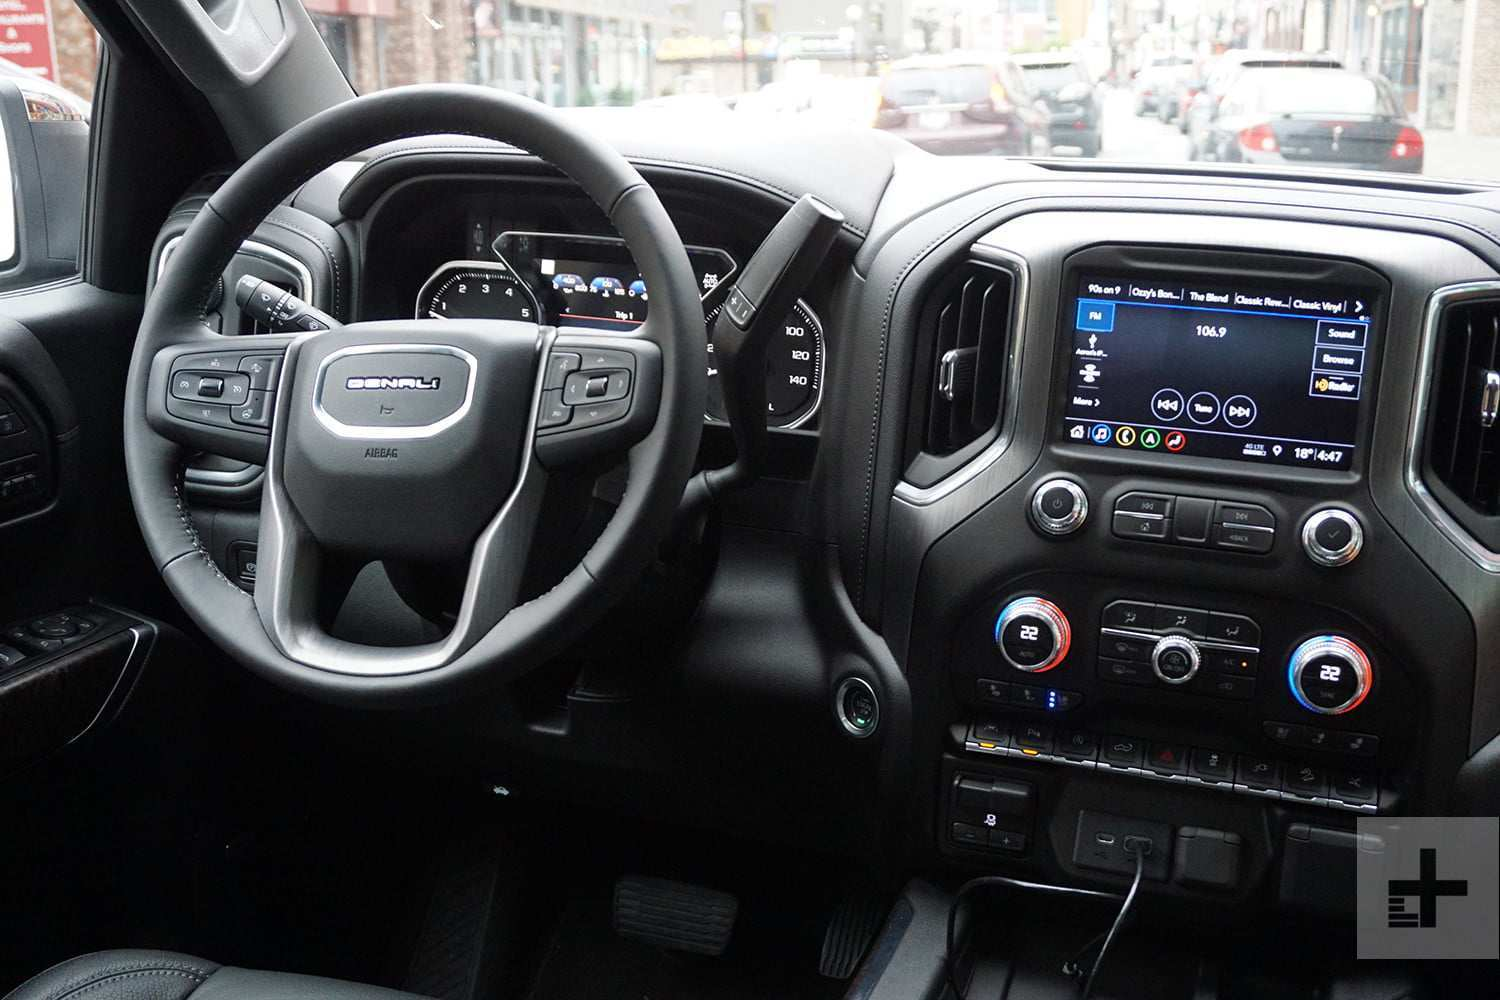 28 Concept of 2019 Gmc Sierra Interior Spy Shoot by 2019 Gmc Sierra Interior